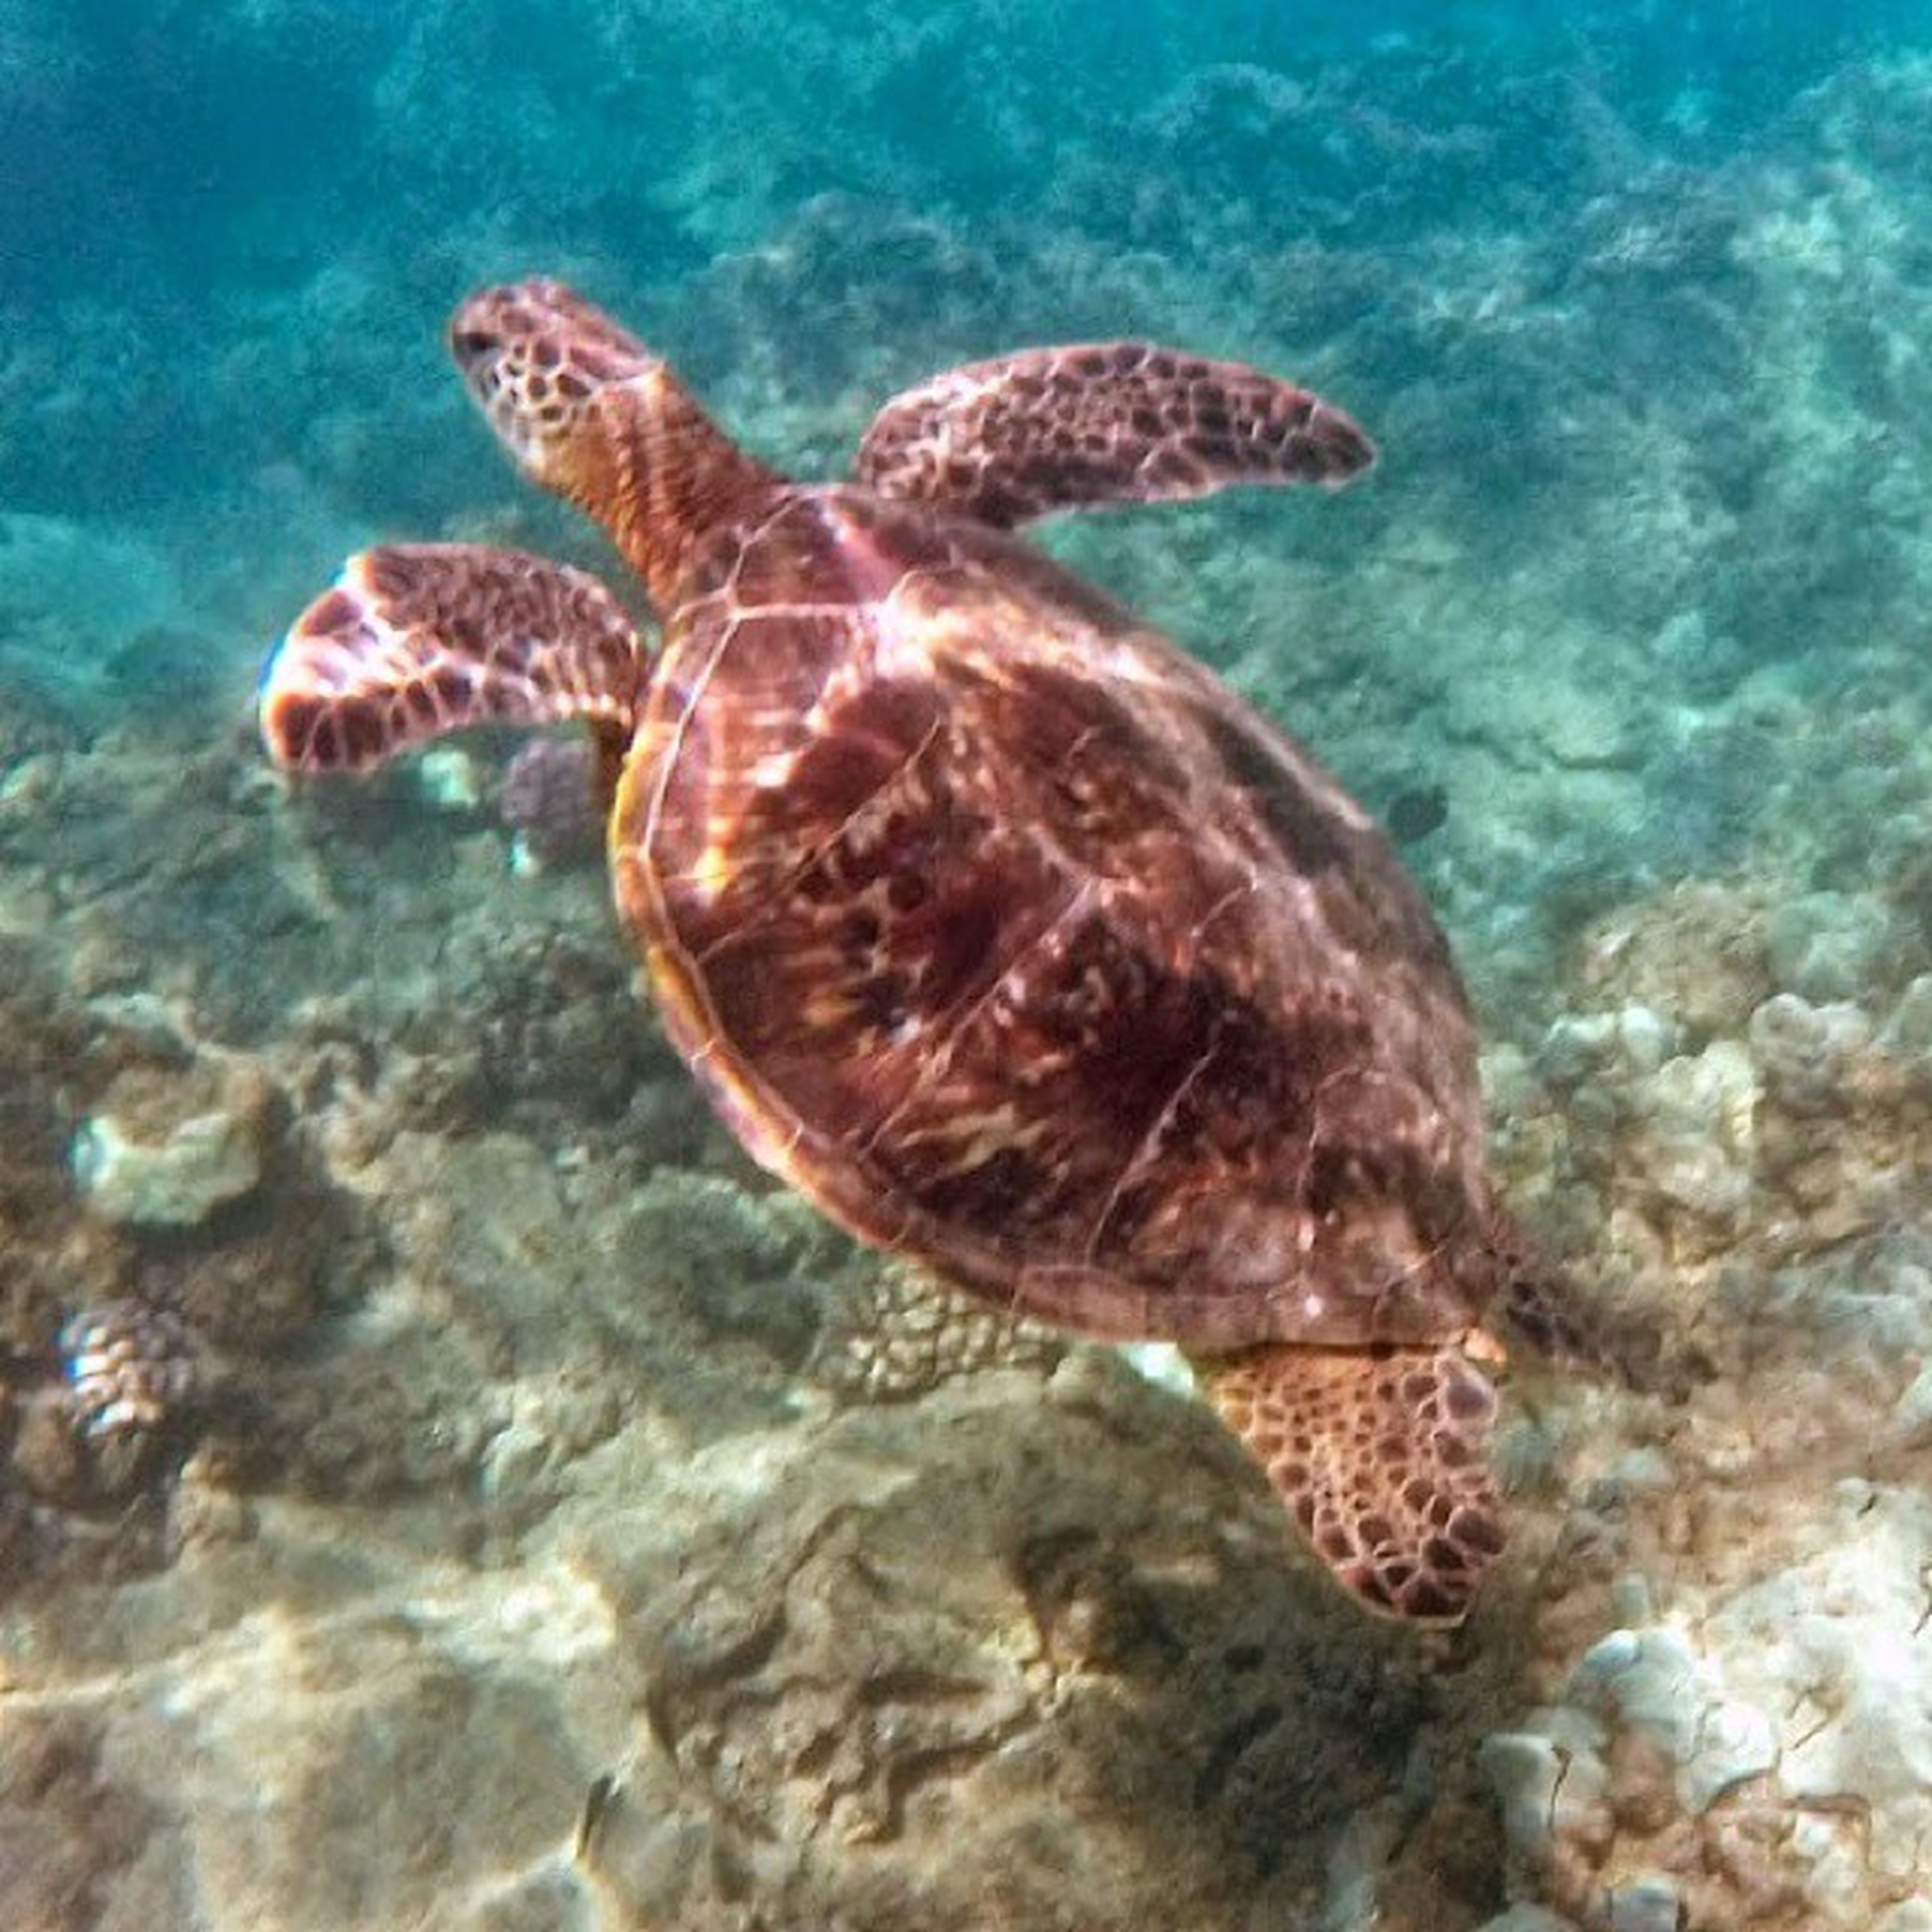 animal themes, animals in the wild, wildlife, water, one animal, swimming, sea life, underwater, sea, reptile, fish, nature, undersea, turtle, rock - object, zoology, close-up, two animals, beauty in nature, animals in captivity